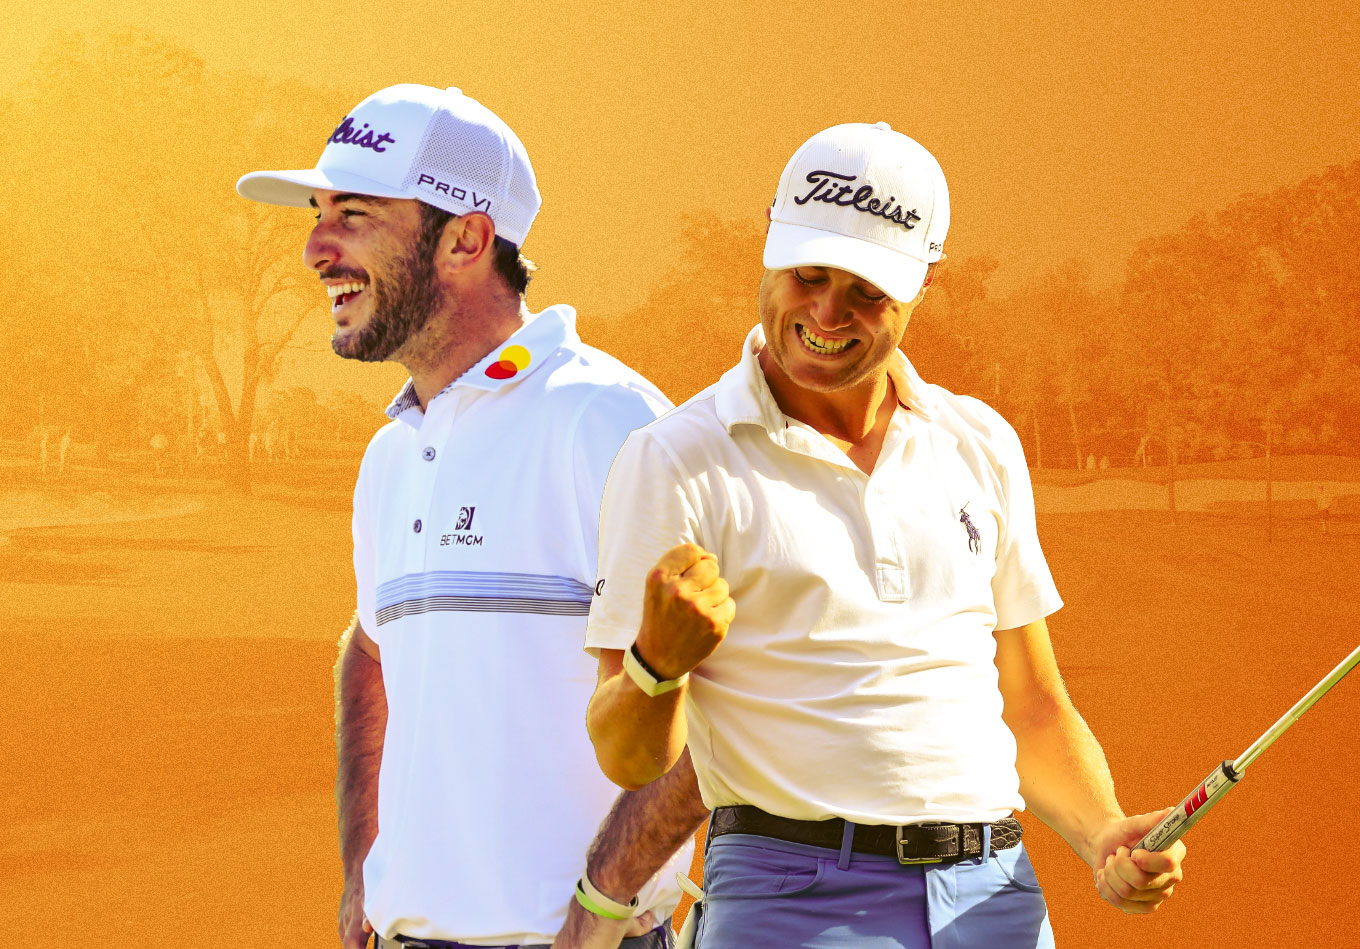 FRACAS Looks to Copperhead: Our Model's Winner, Value Picks and Fantasy Plays for the Valspar